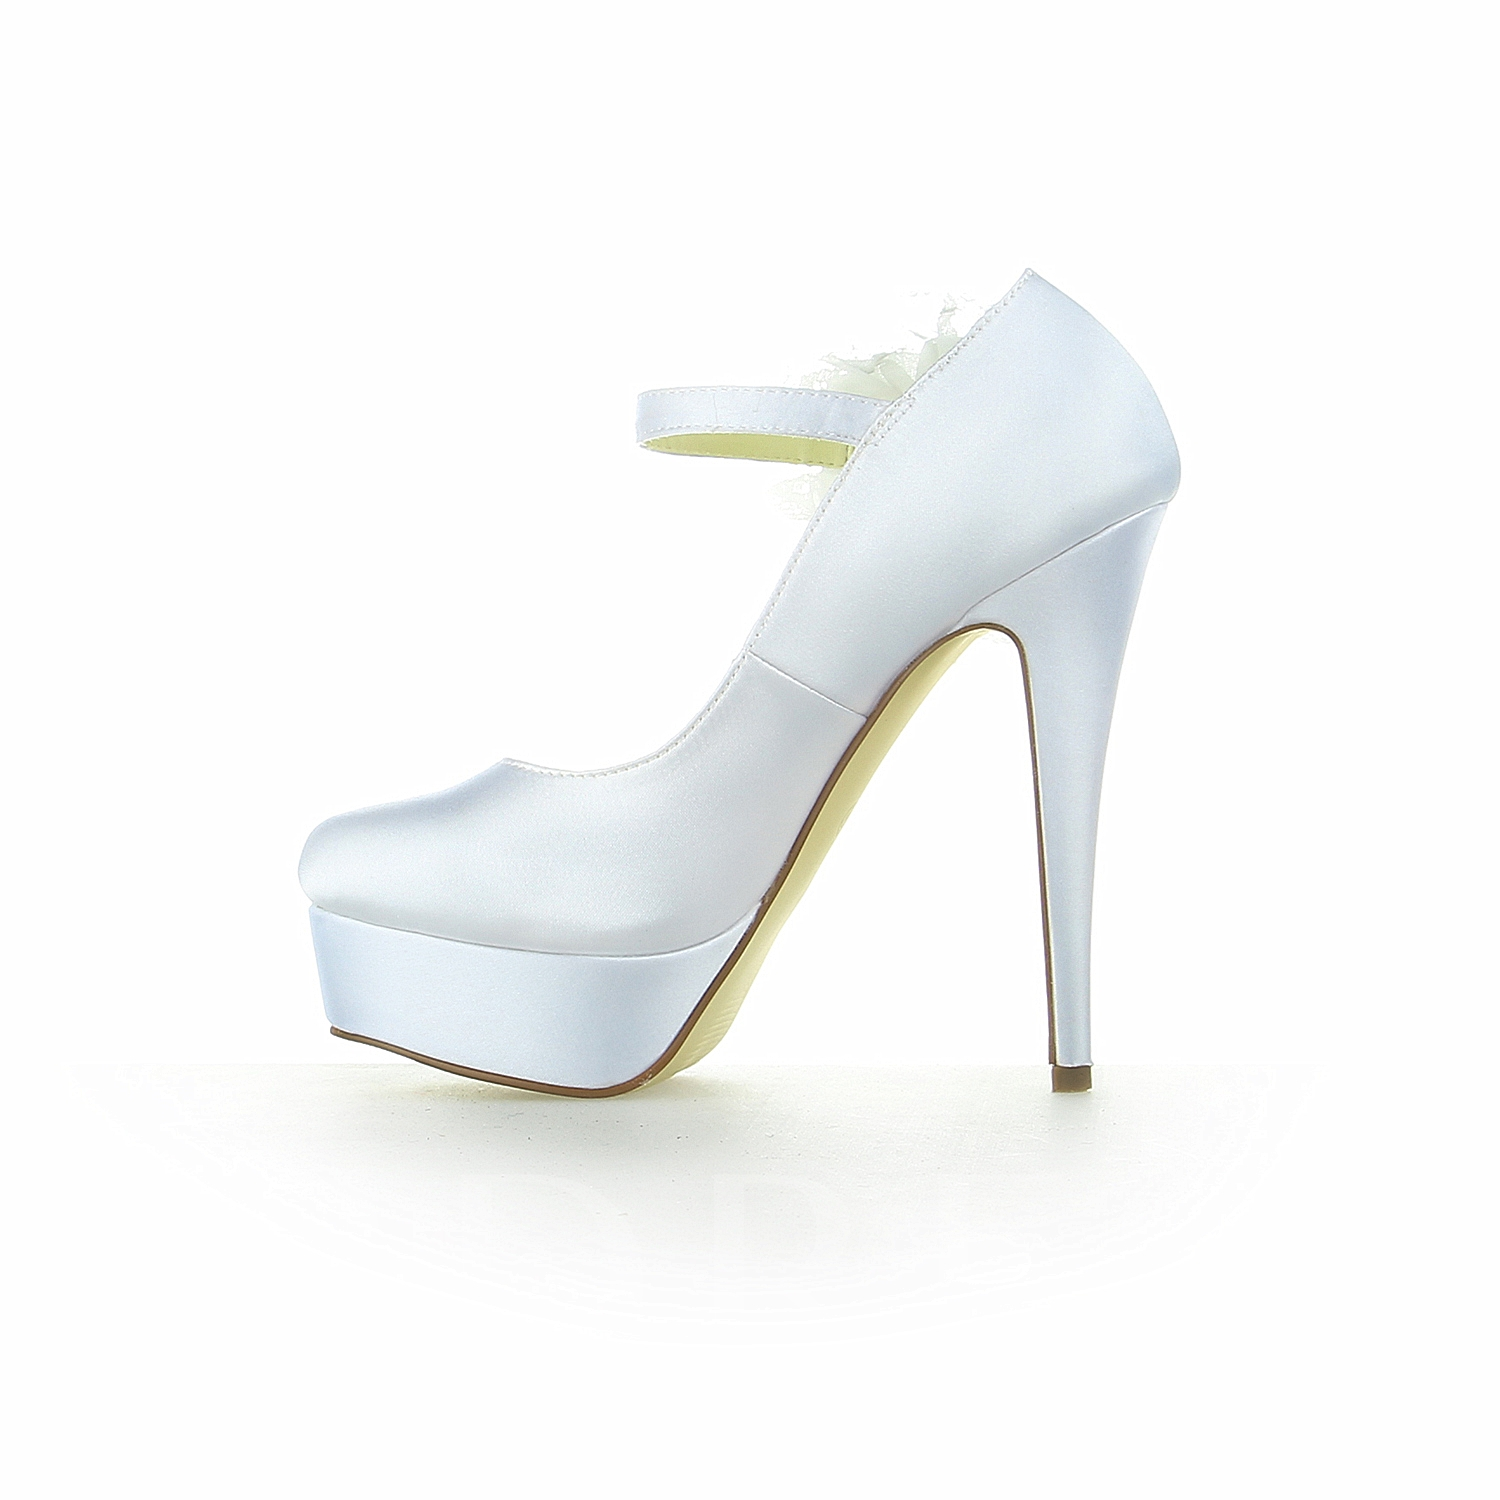 Flower Satin Platform High Heel Bridal Shoes